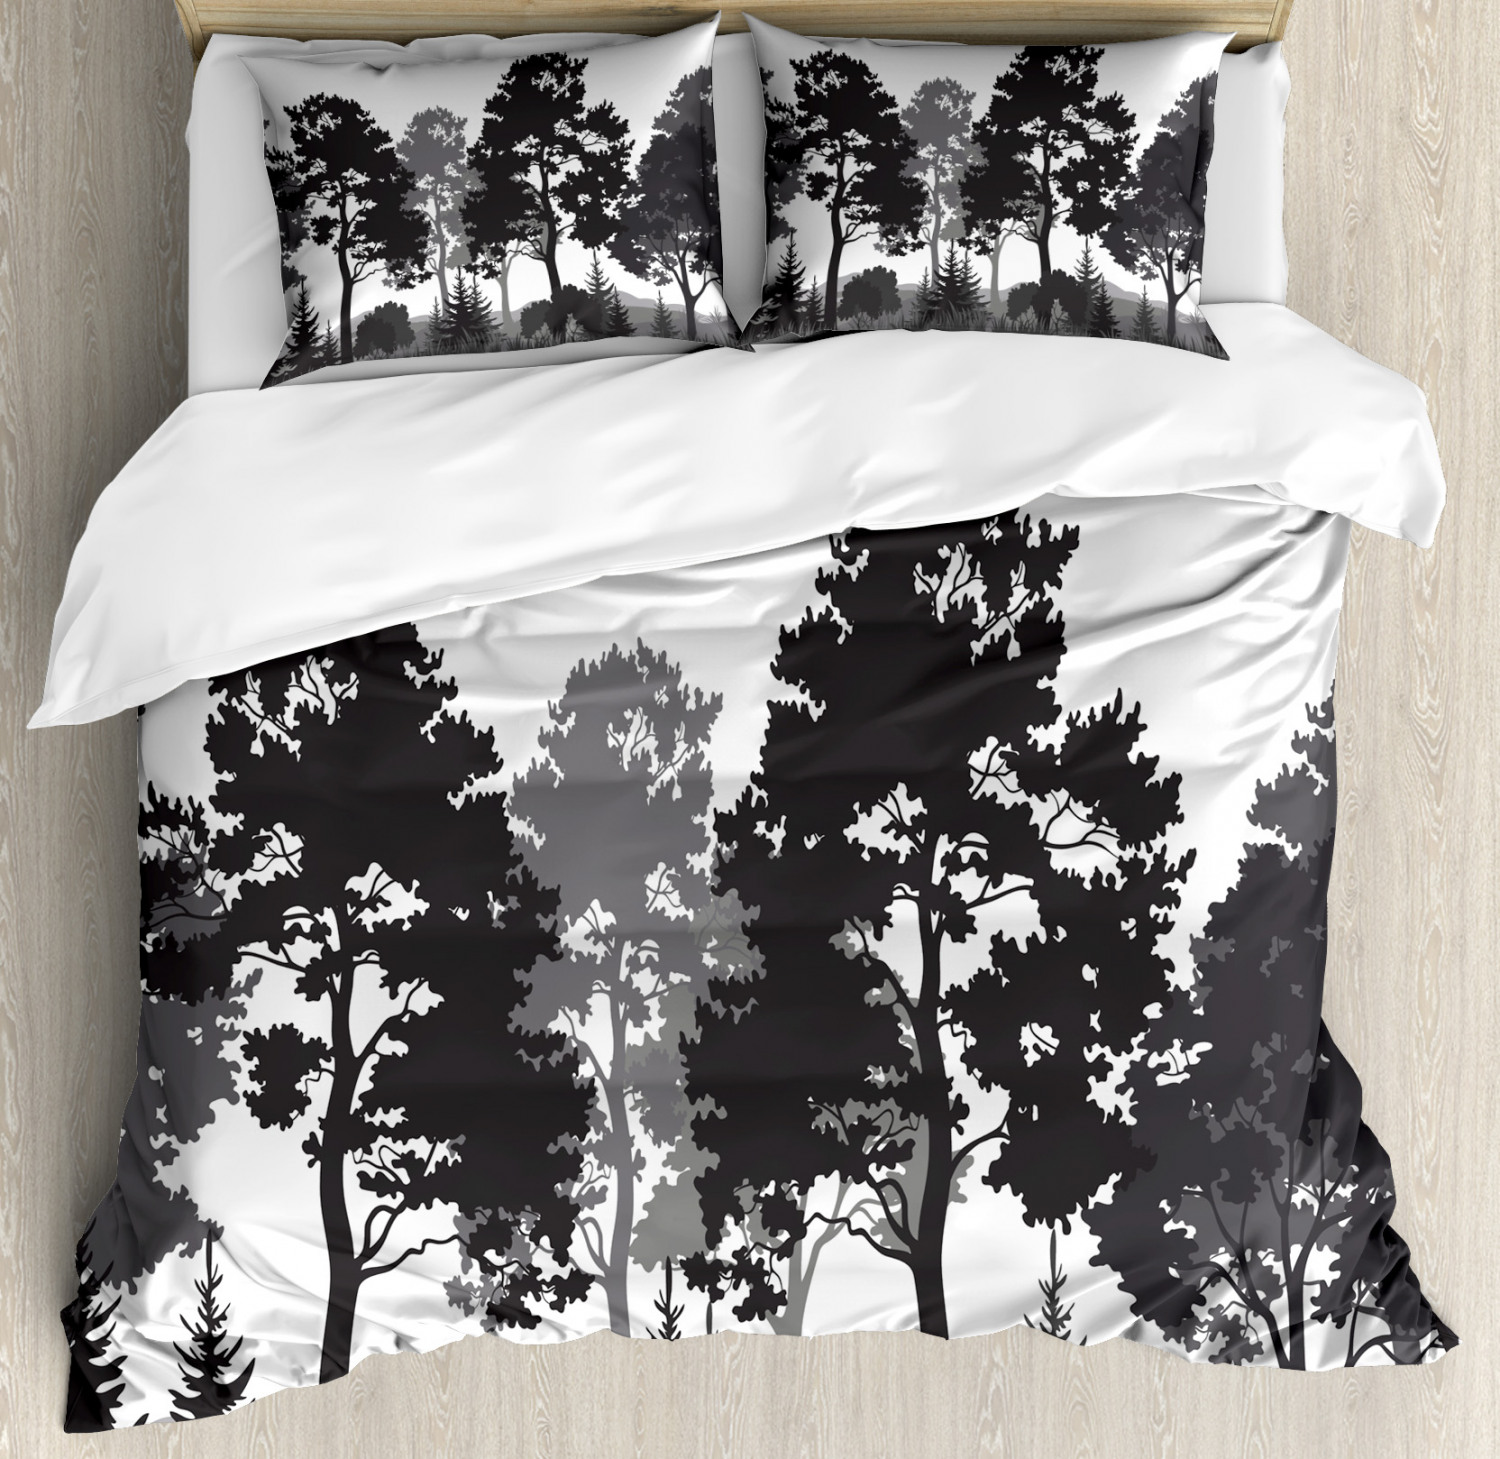 Black And White Duvet Cover Set Summer Forest With Pine And Fir Trees Grass Bush Silhouettes Decorative Bedding Set With Pillow Shams Grey White Charcoal Grey By Ambesonne Walmart Com Walmart Com